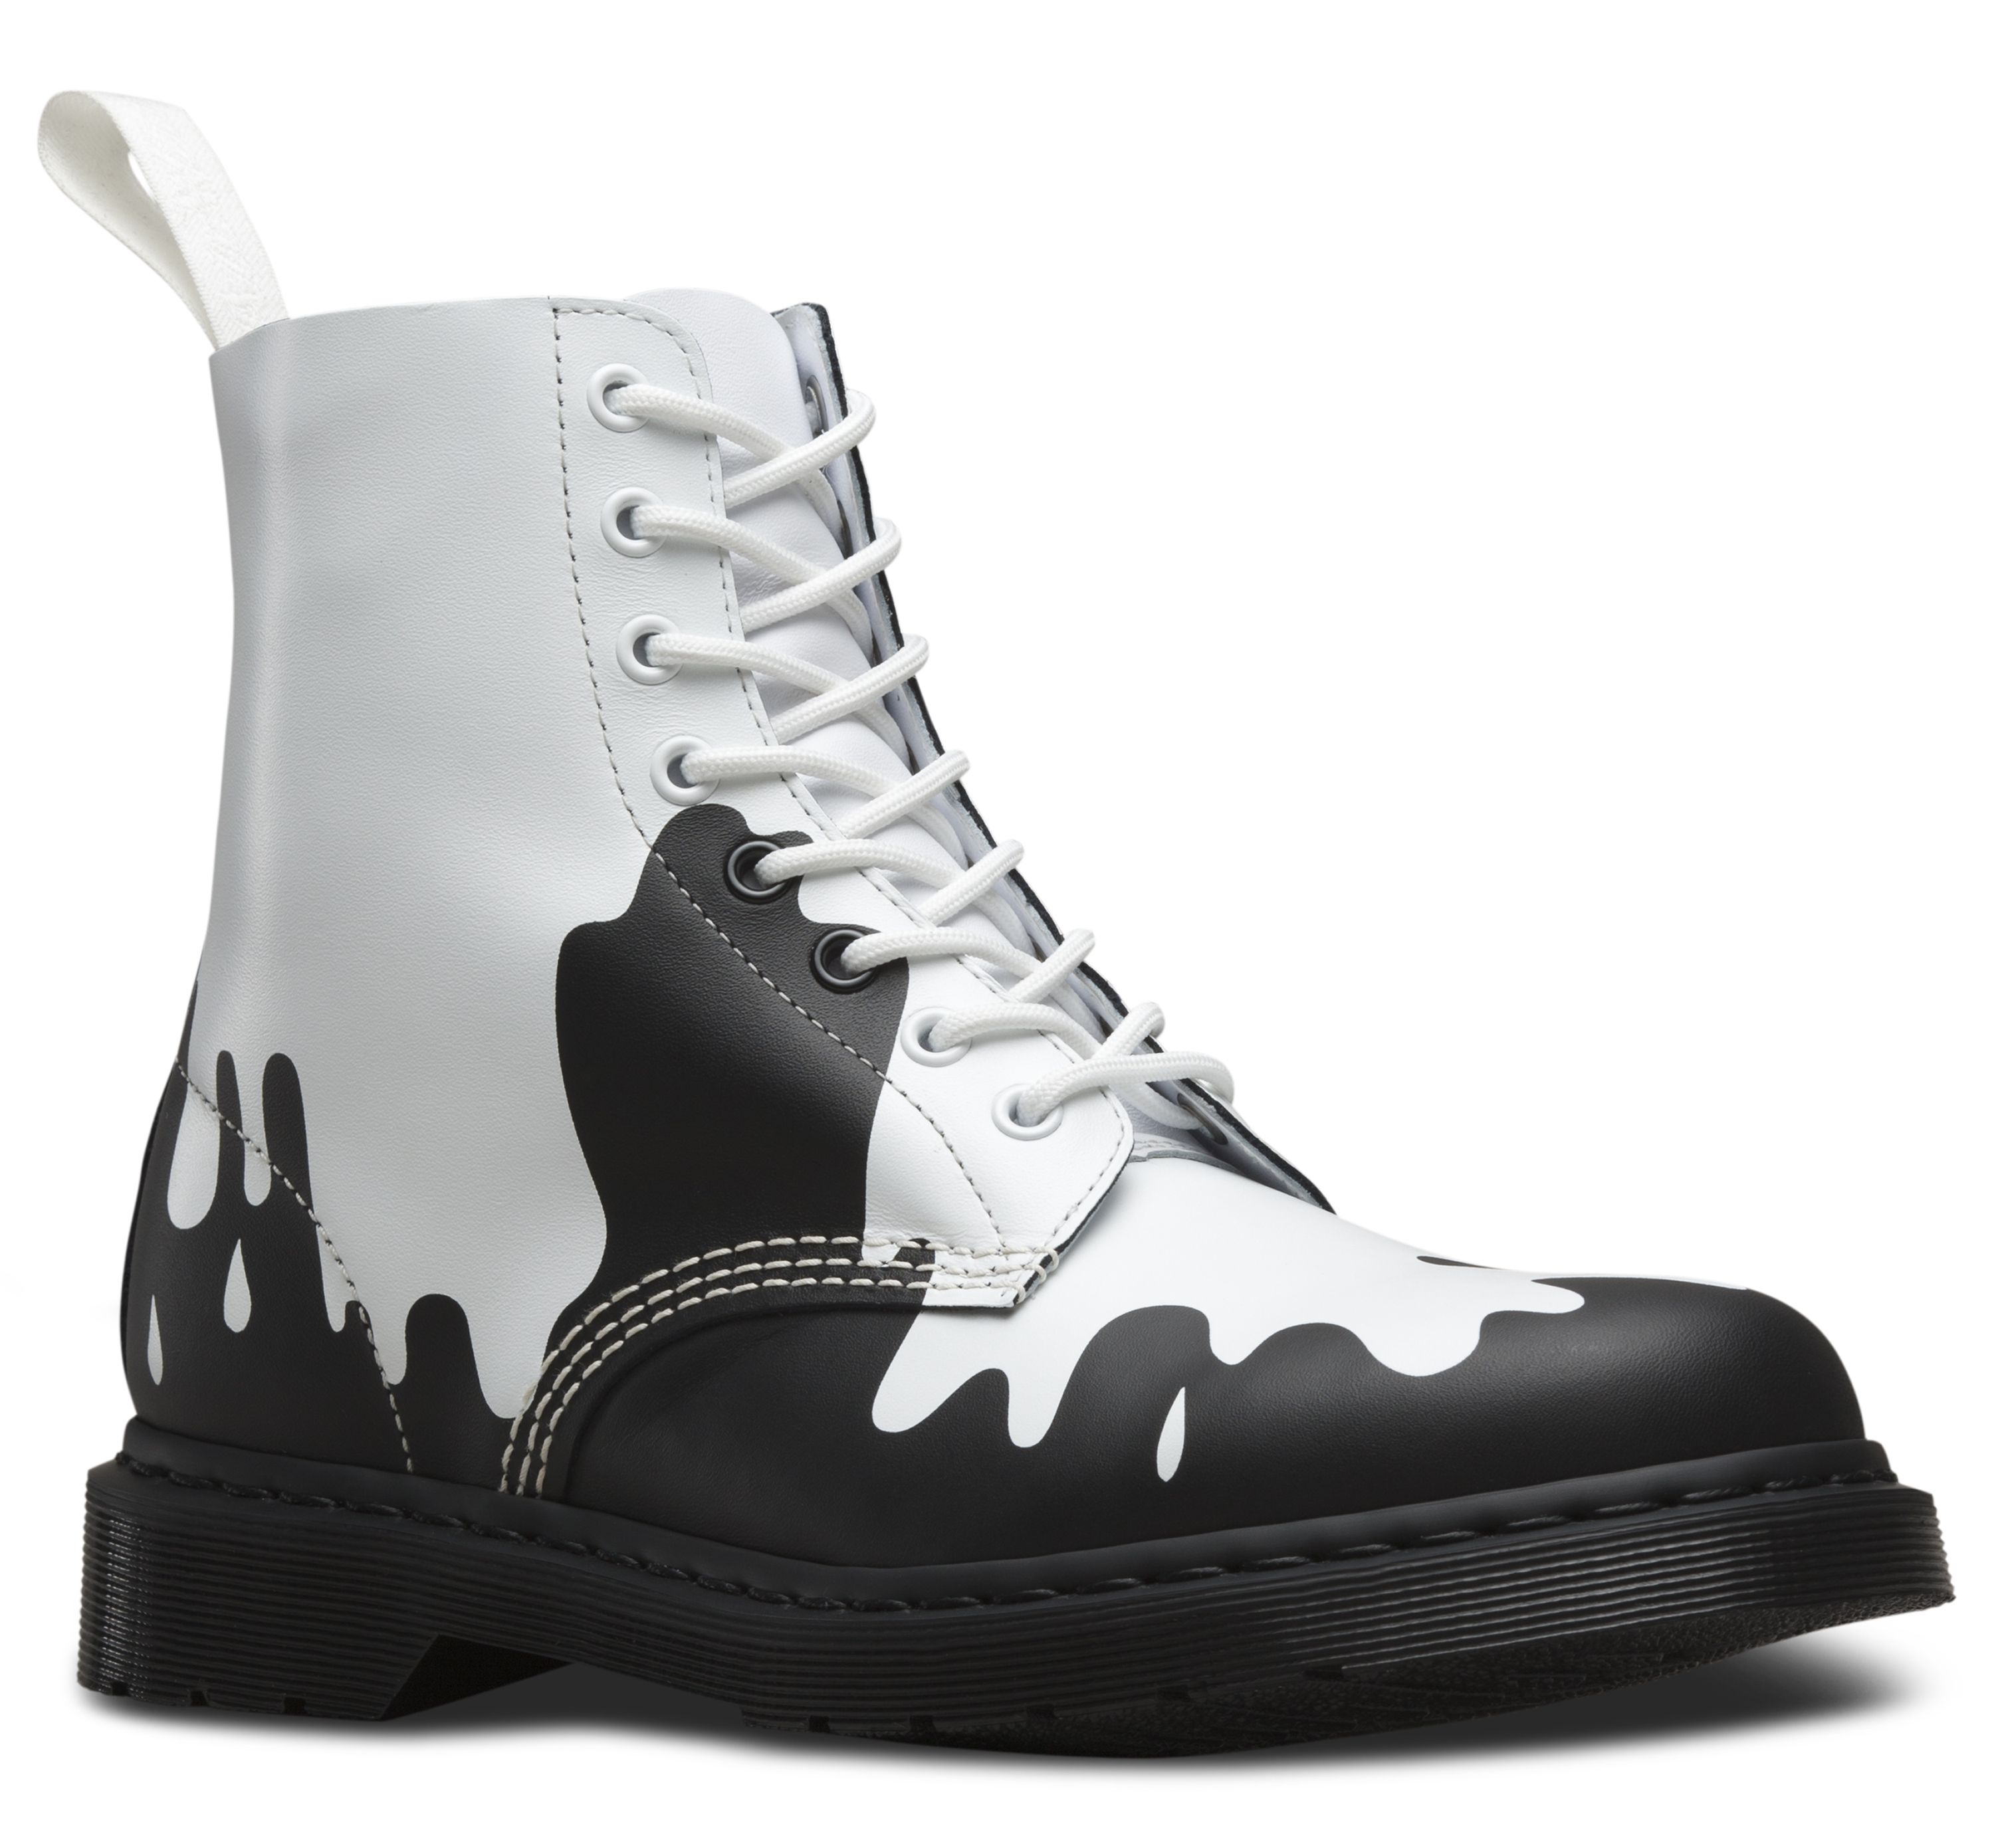 From drmartens.com us website. They make another boot with the colors  reversed. I love this paint splat idea! 3770fd4fada